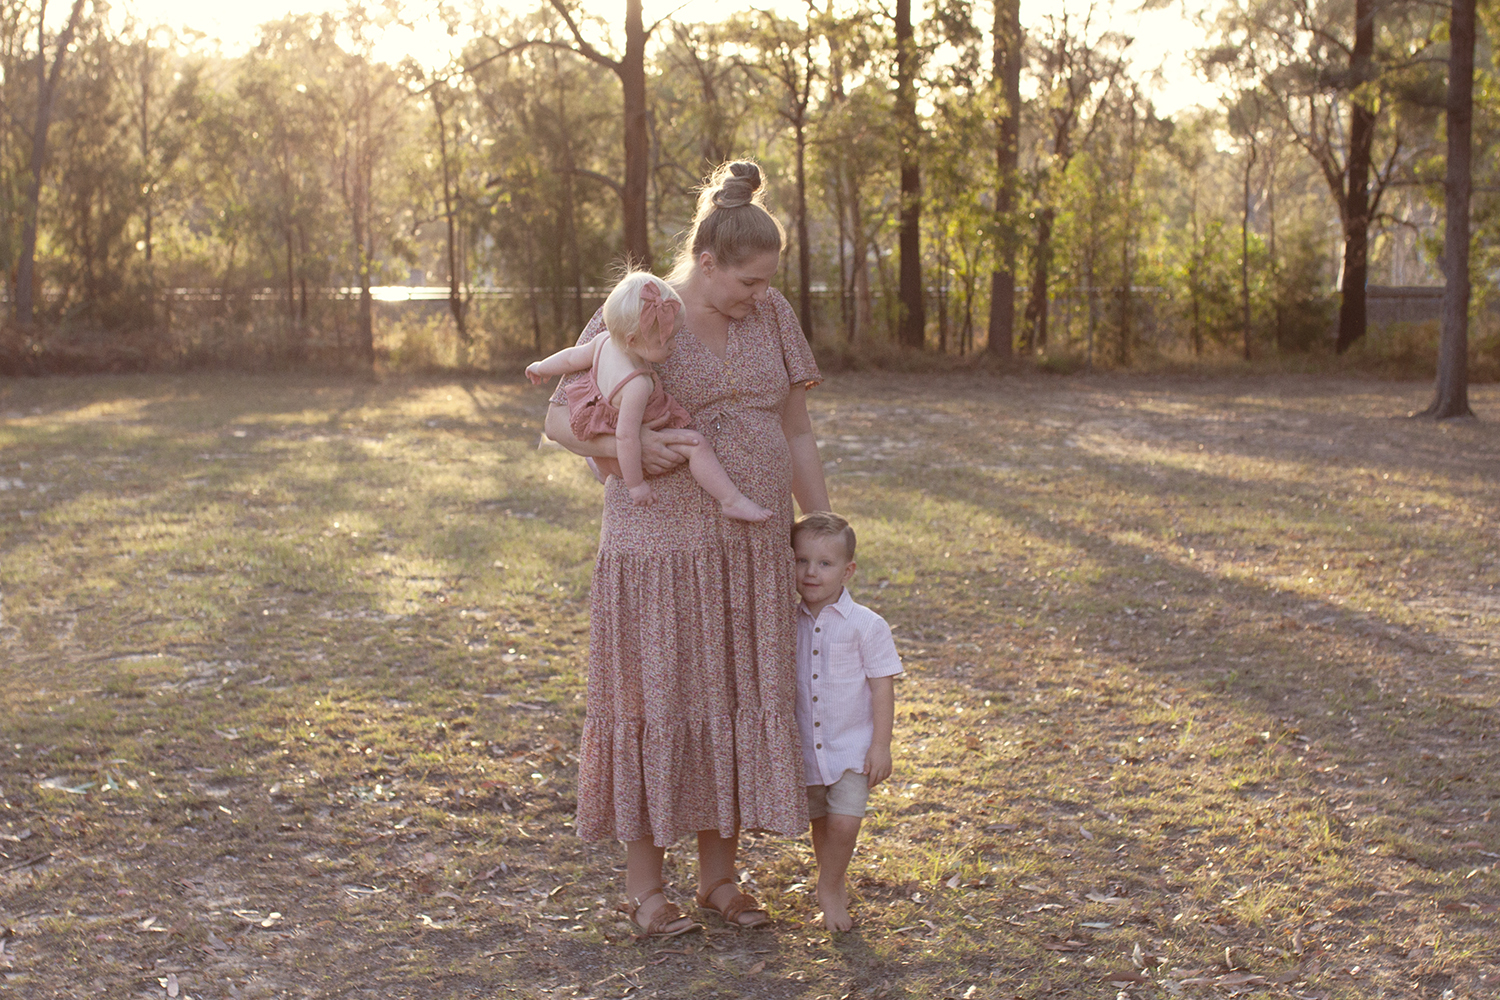 Pregnant mother wearing peach floral dress holding one year old girl wearing peach romper and bow and toddler sibling boy wearing white shirt and tan shorts in park at sunset